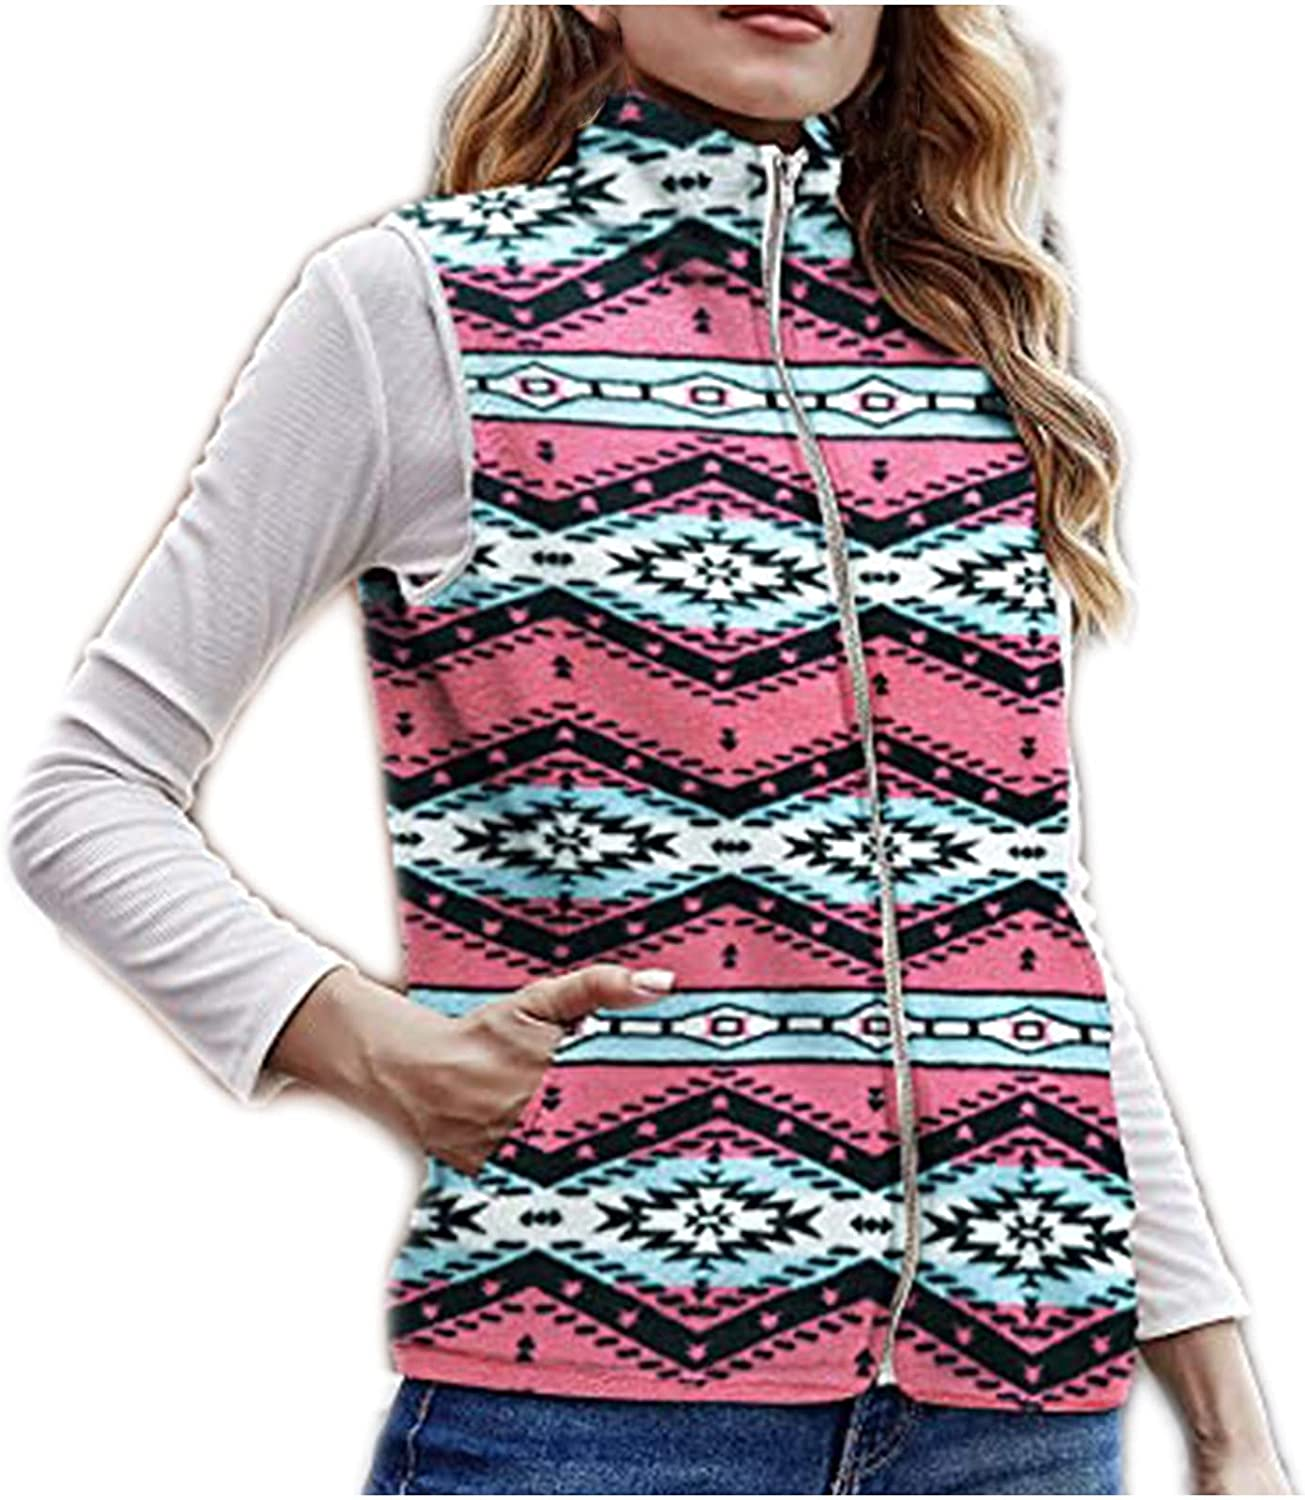 Kanzd Sweater Popular brand in the world Vest for Las Vegas Mall Women Casual Vintage Ge Up Zip Sleeveless